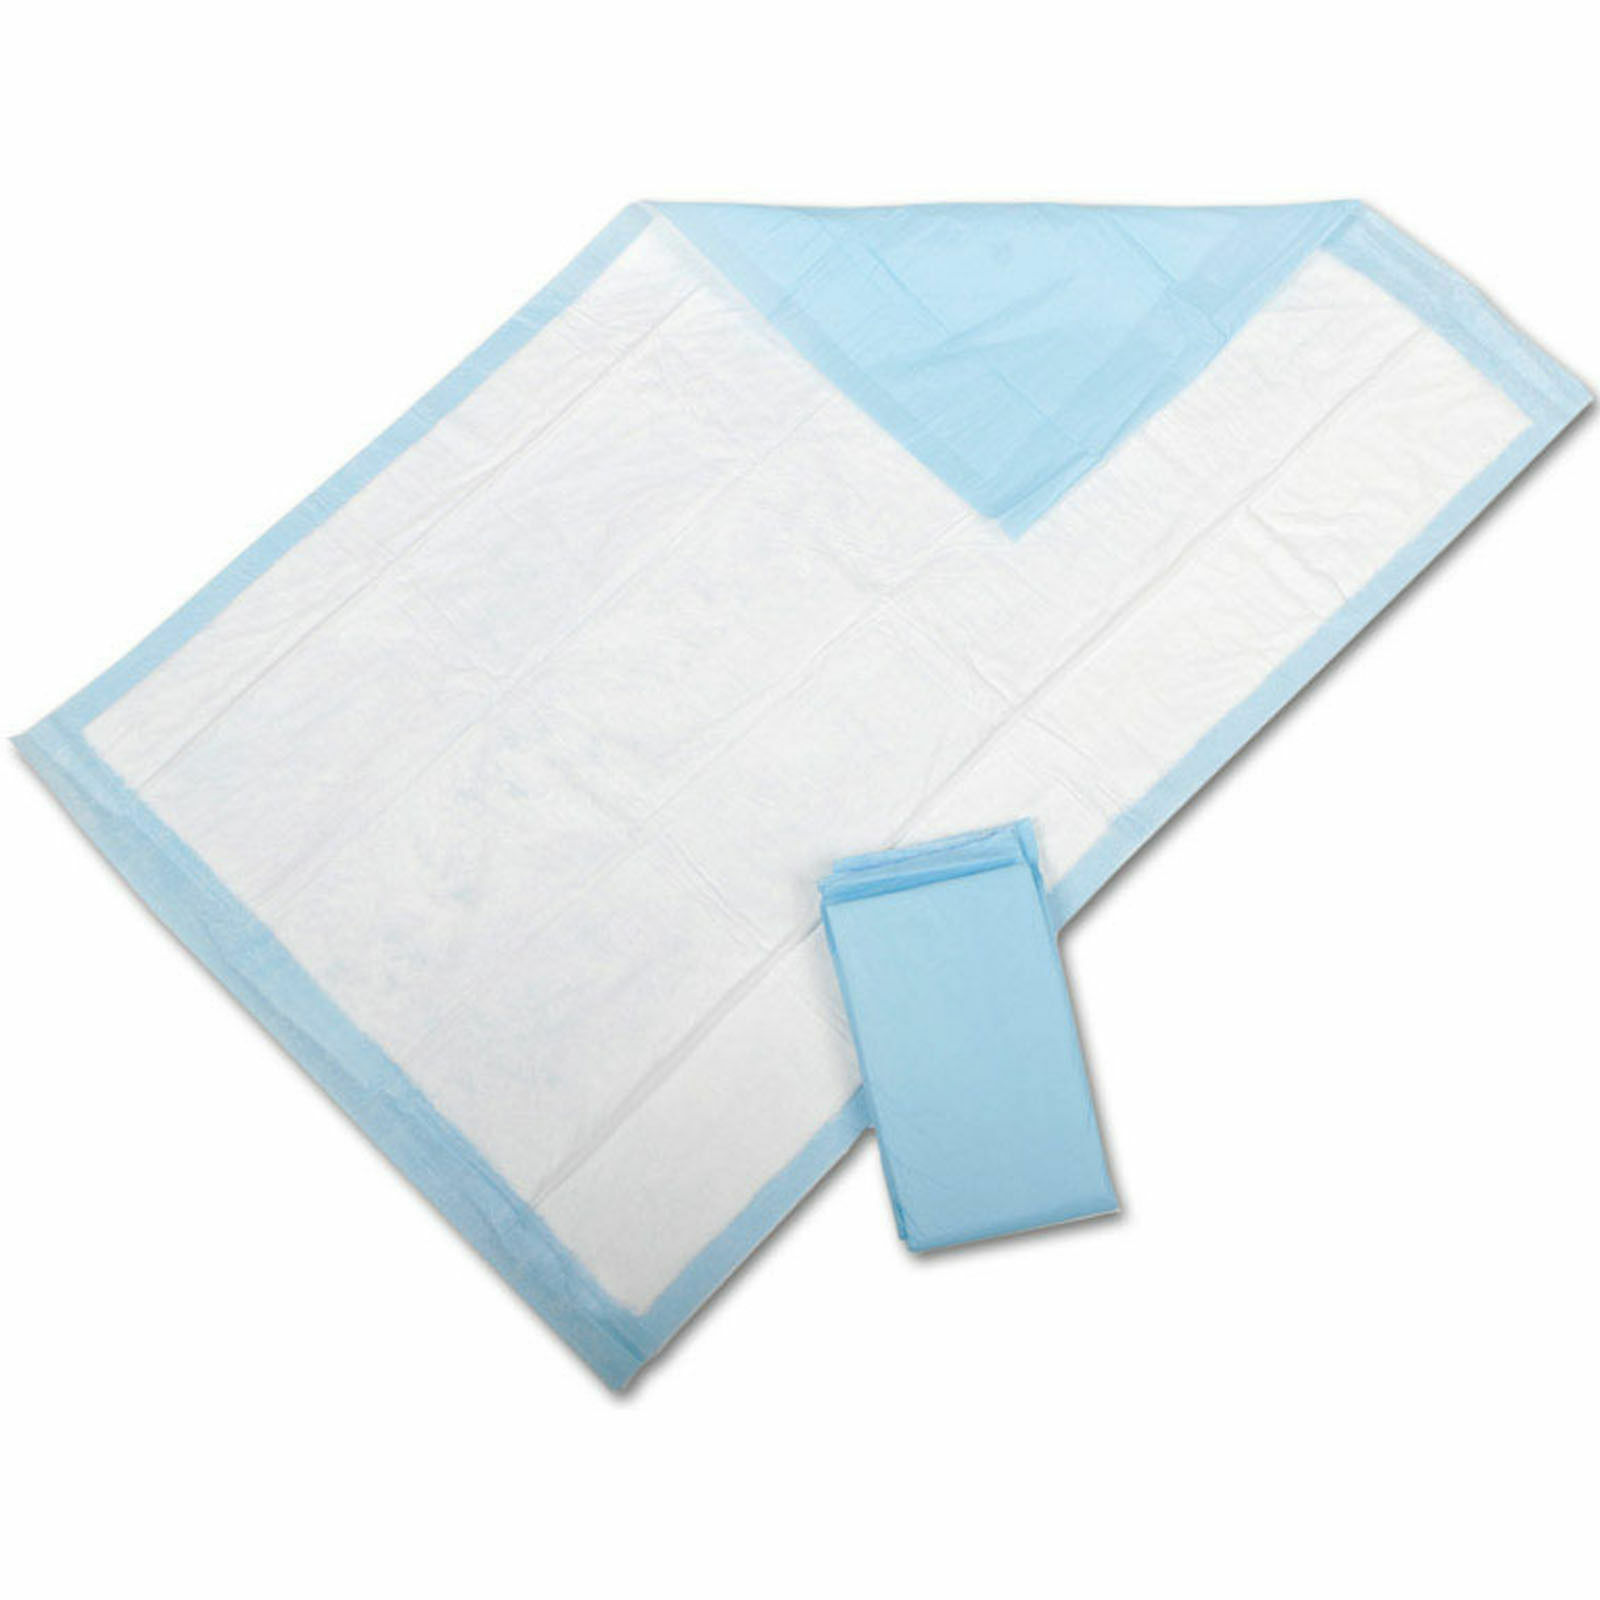 Used Hospital Bed Pads